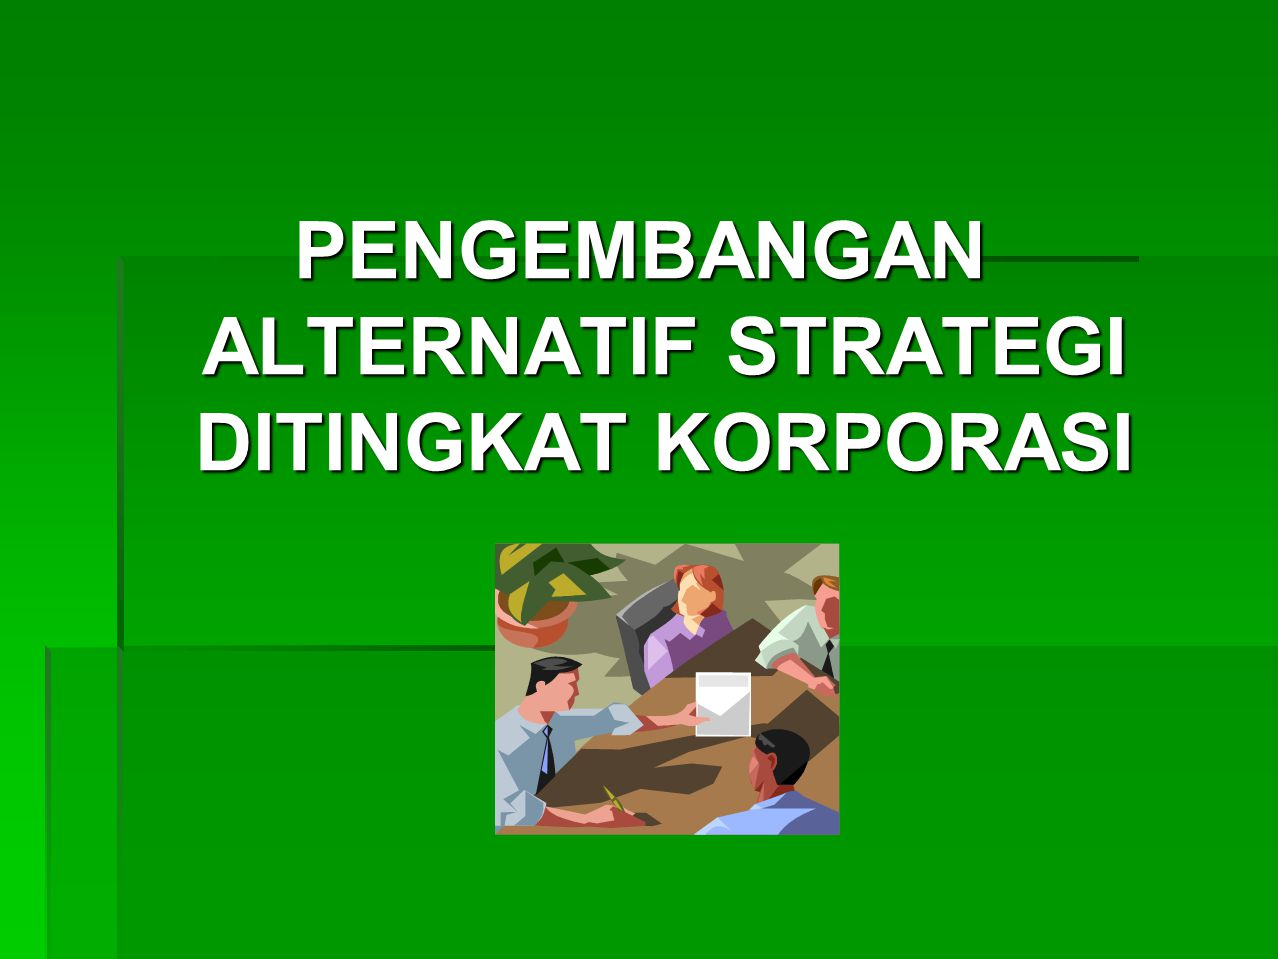 PENGEMBANGAN ALTERNATIF STRATEGI DITINGKAT KORPORASI